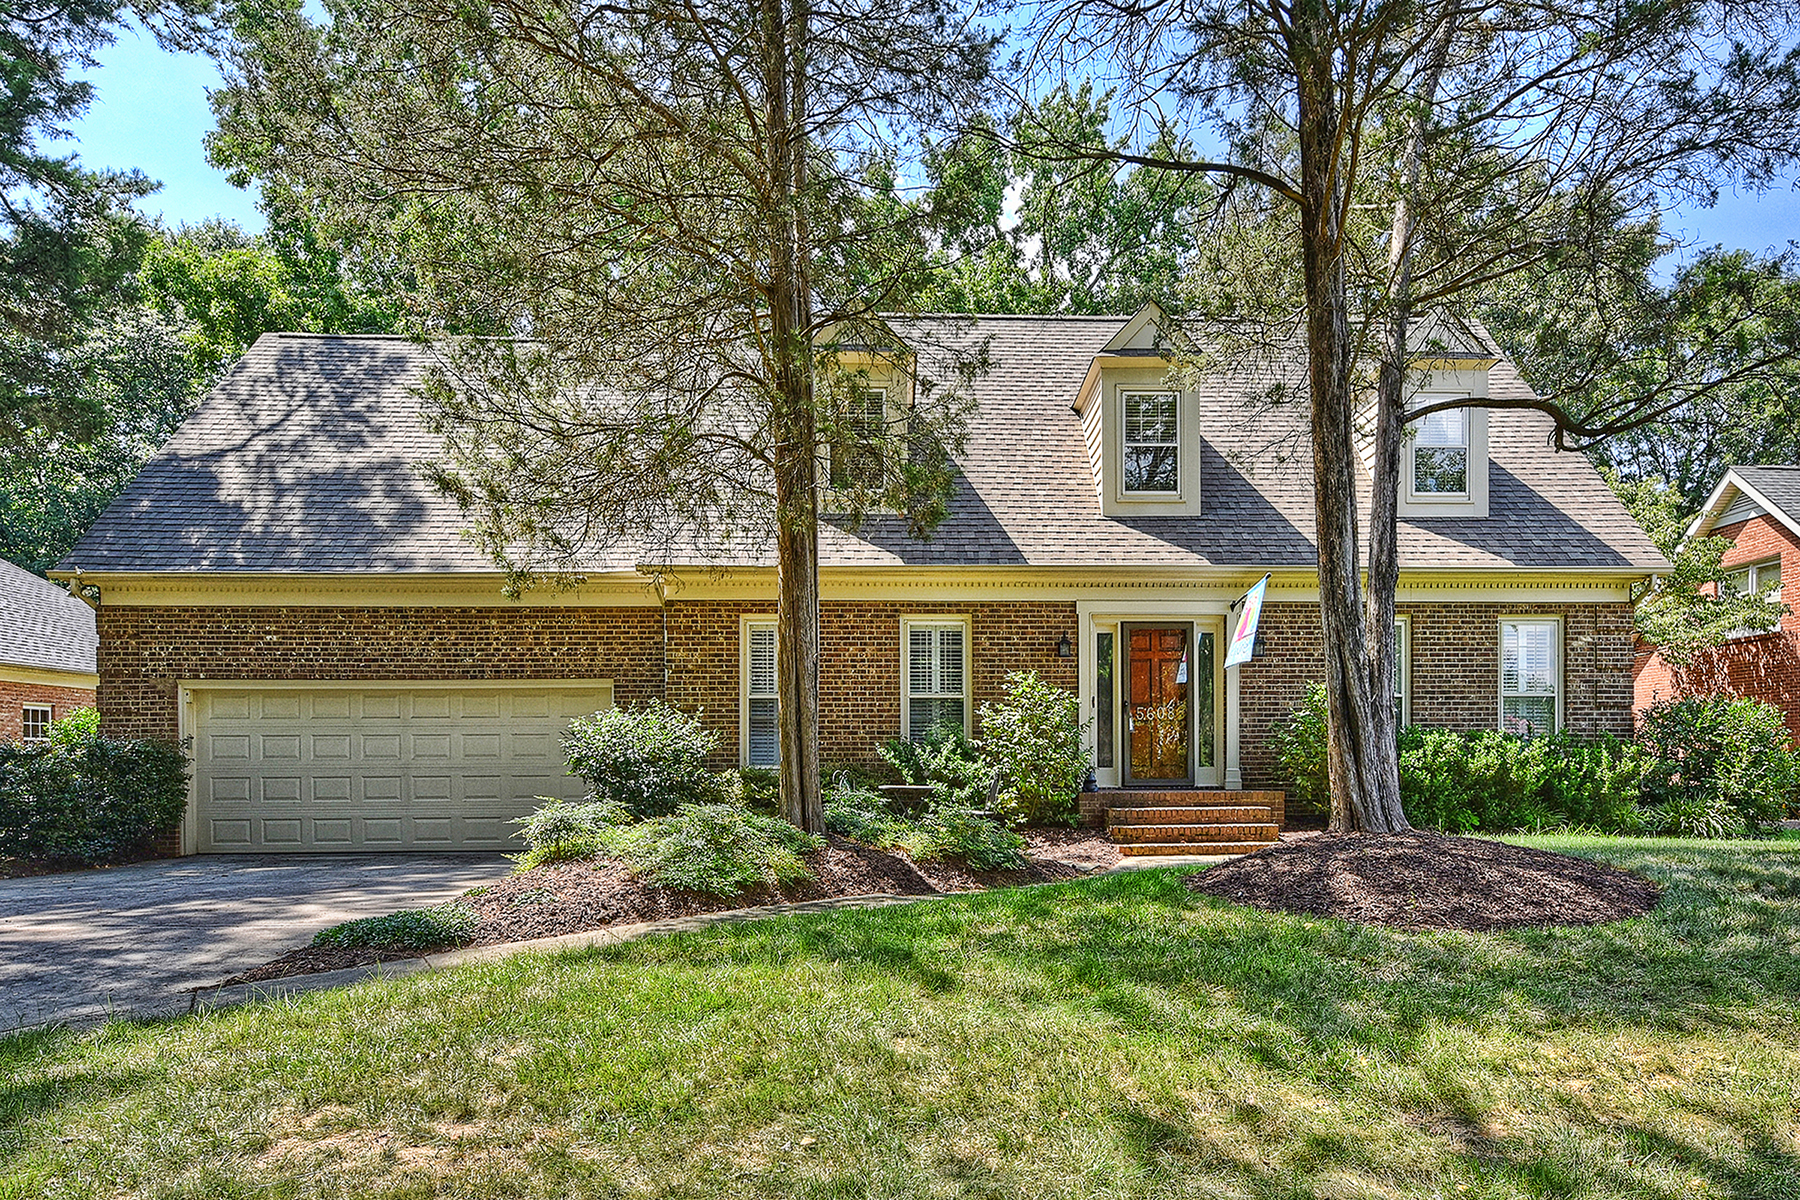 Single Family Home for Sale at 5608 Hillbrook Dr , Charlotte, NC 28226 5608 Hillbrook Dr Charlotte, North Carolina, 28226 United States